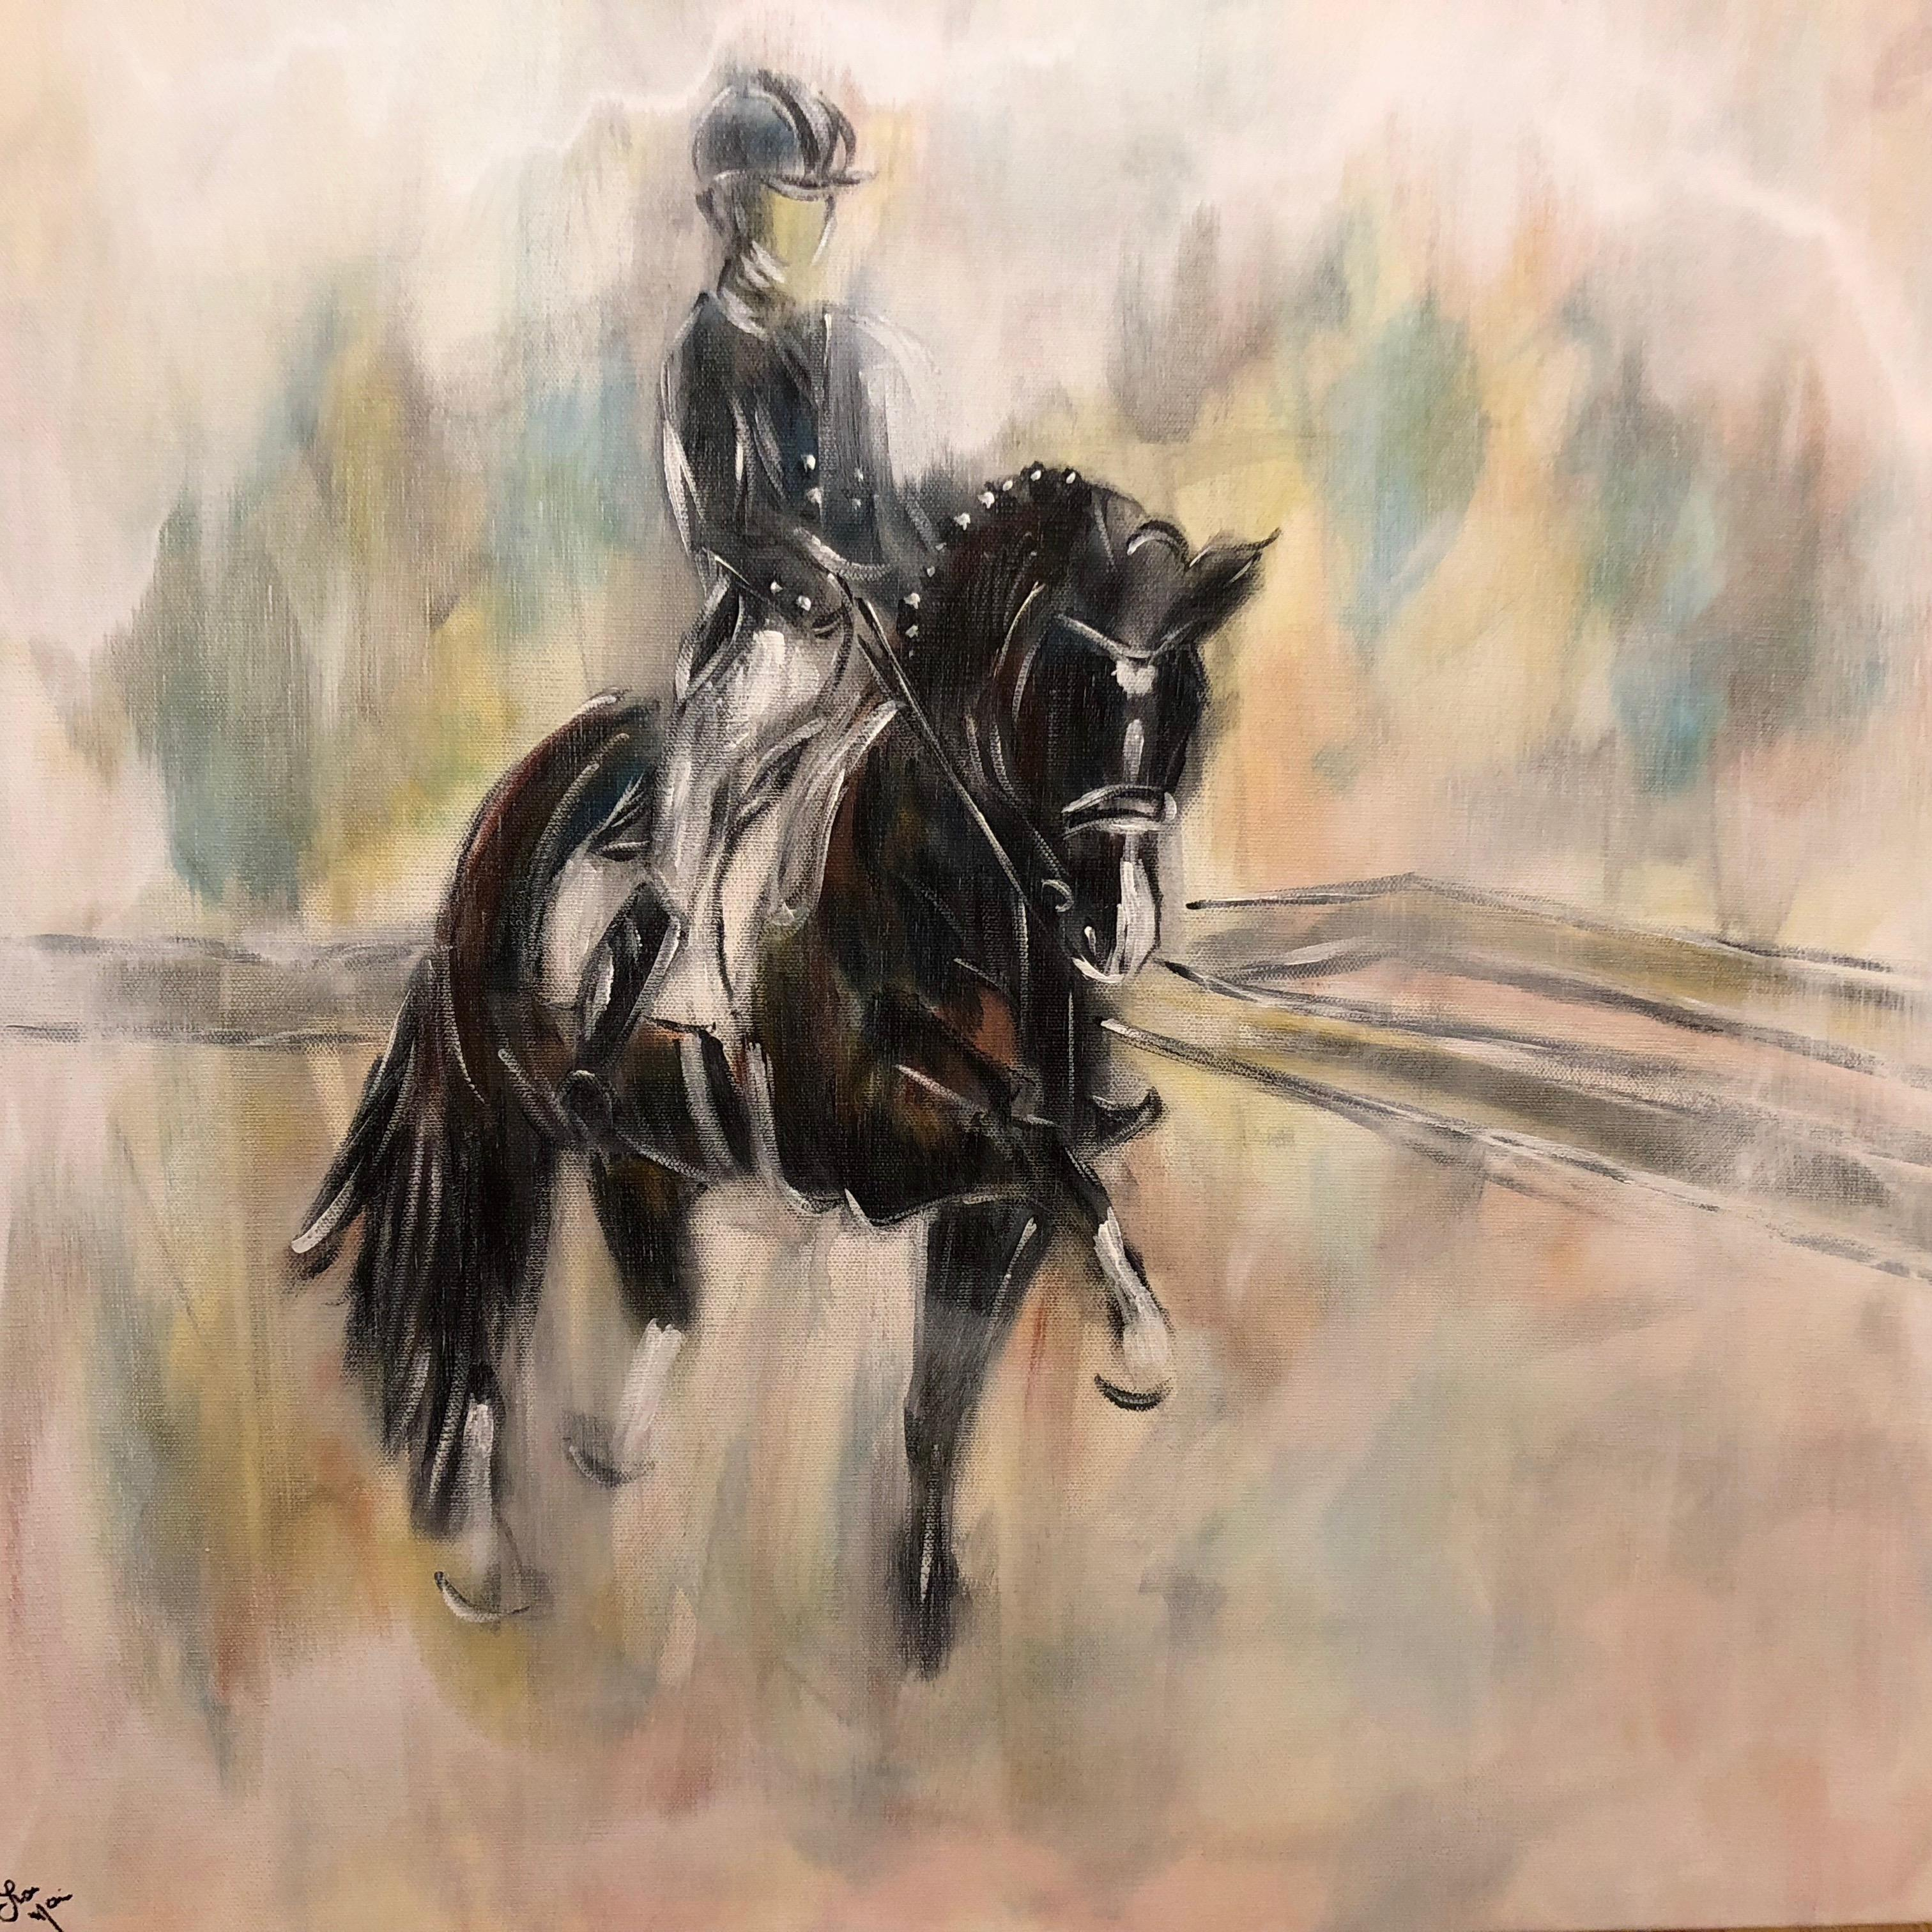 charlotte_dujardin_valegro_by_artist_lisa_marie_bishop_c_lmb_high_res.jpeg